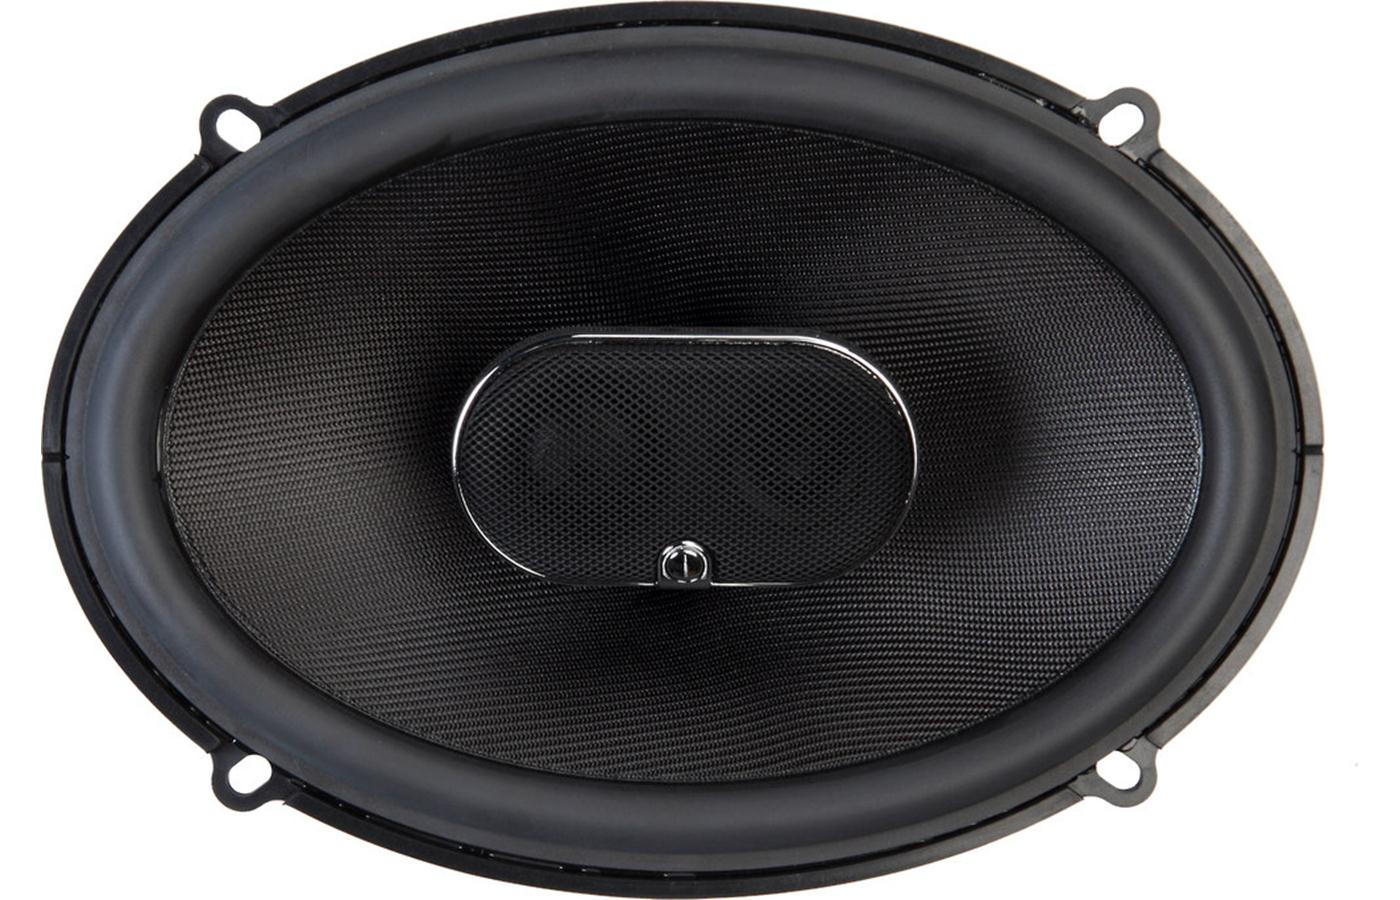 Infinity Kapp 693 11i 6x9 3 Way Speakers Driving Sound